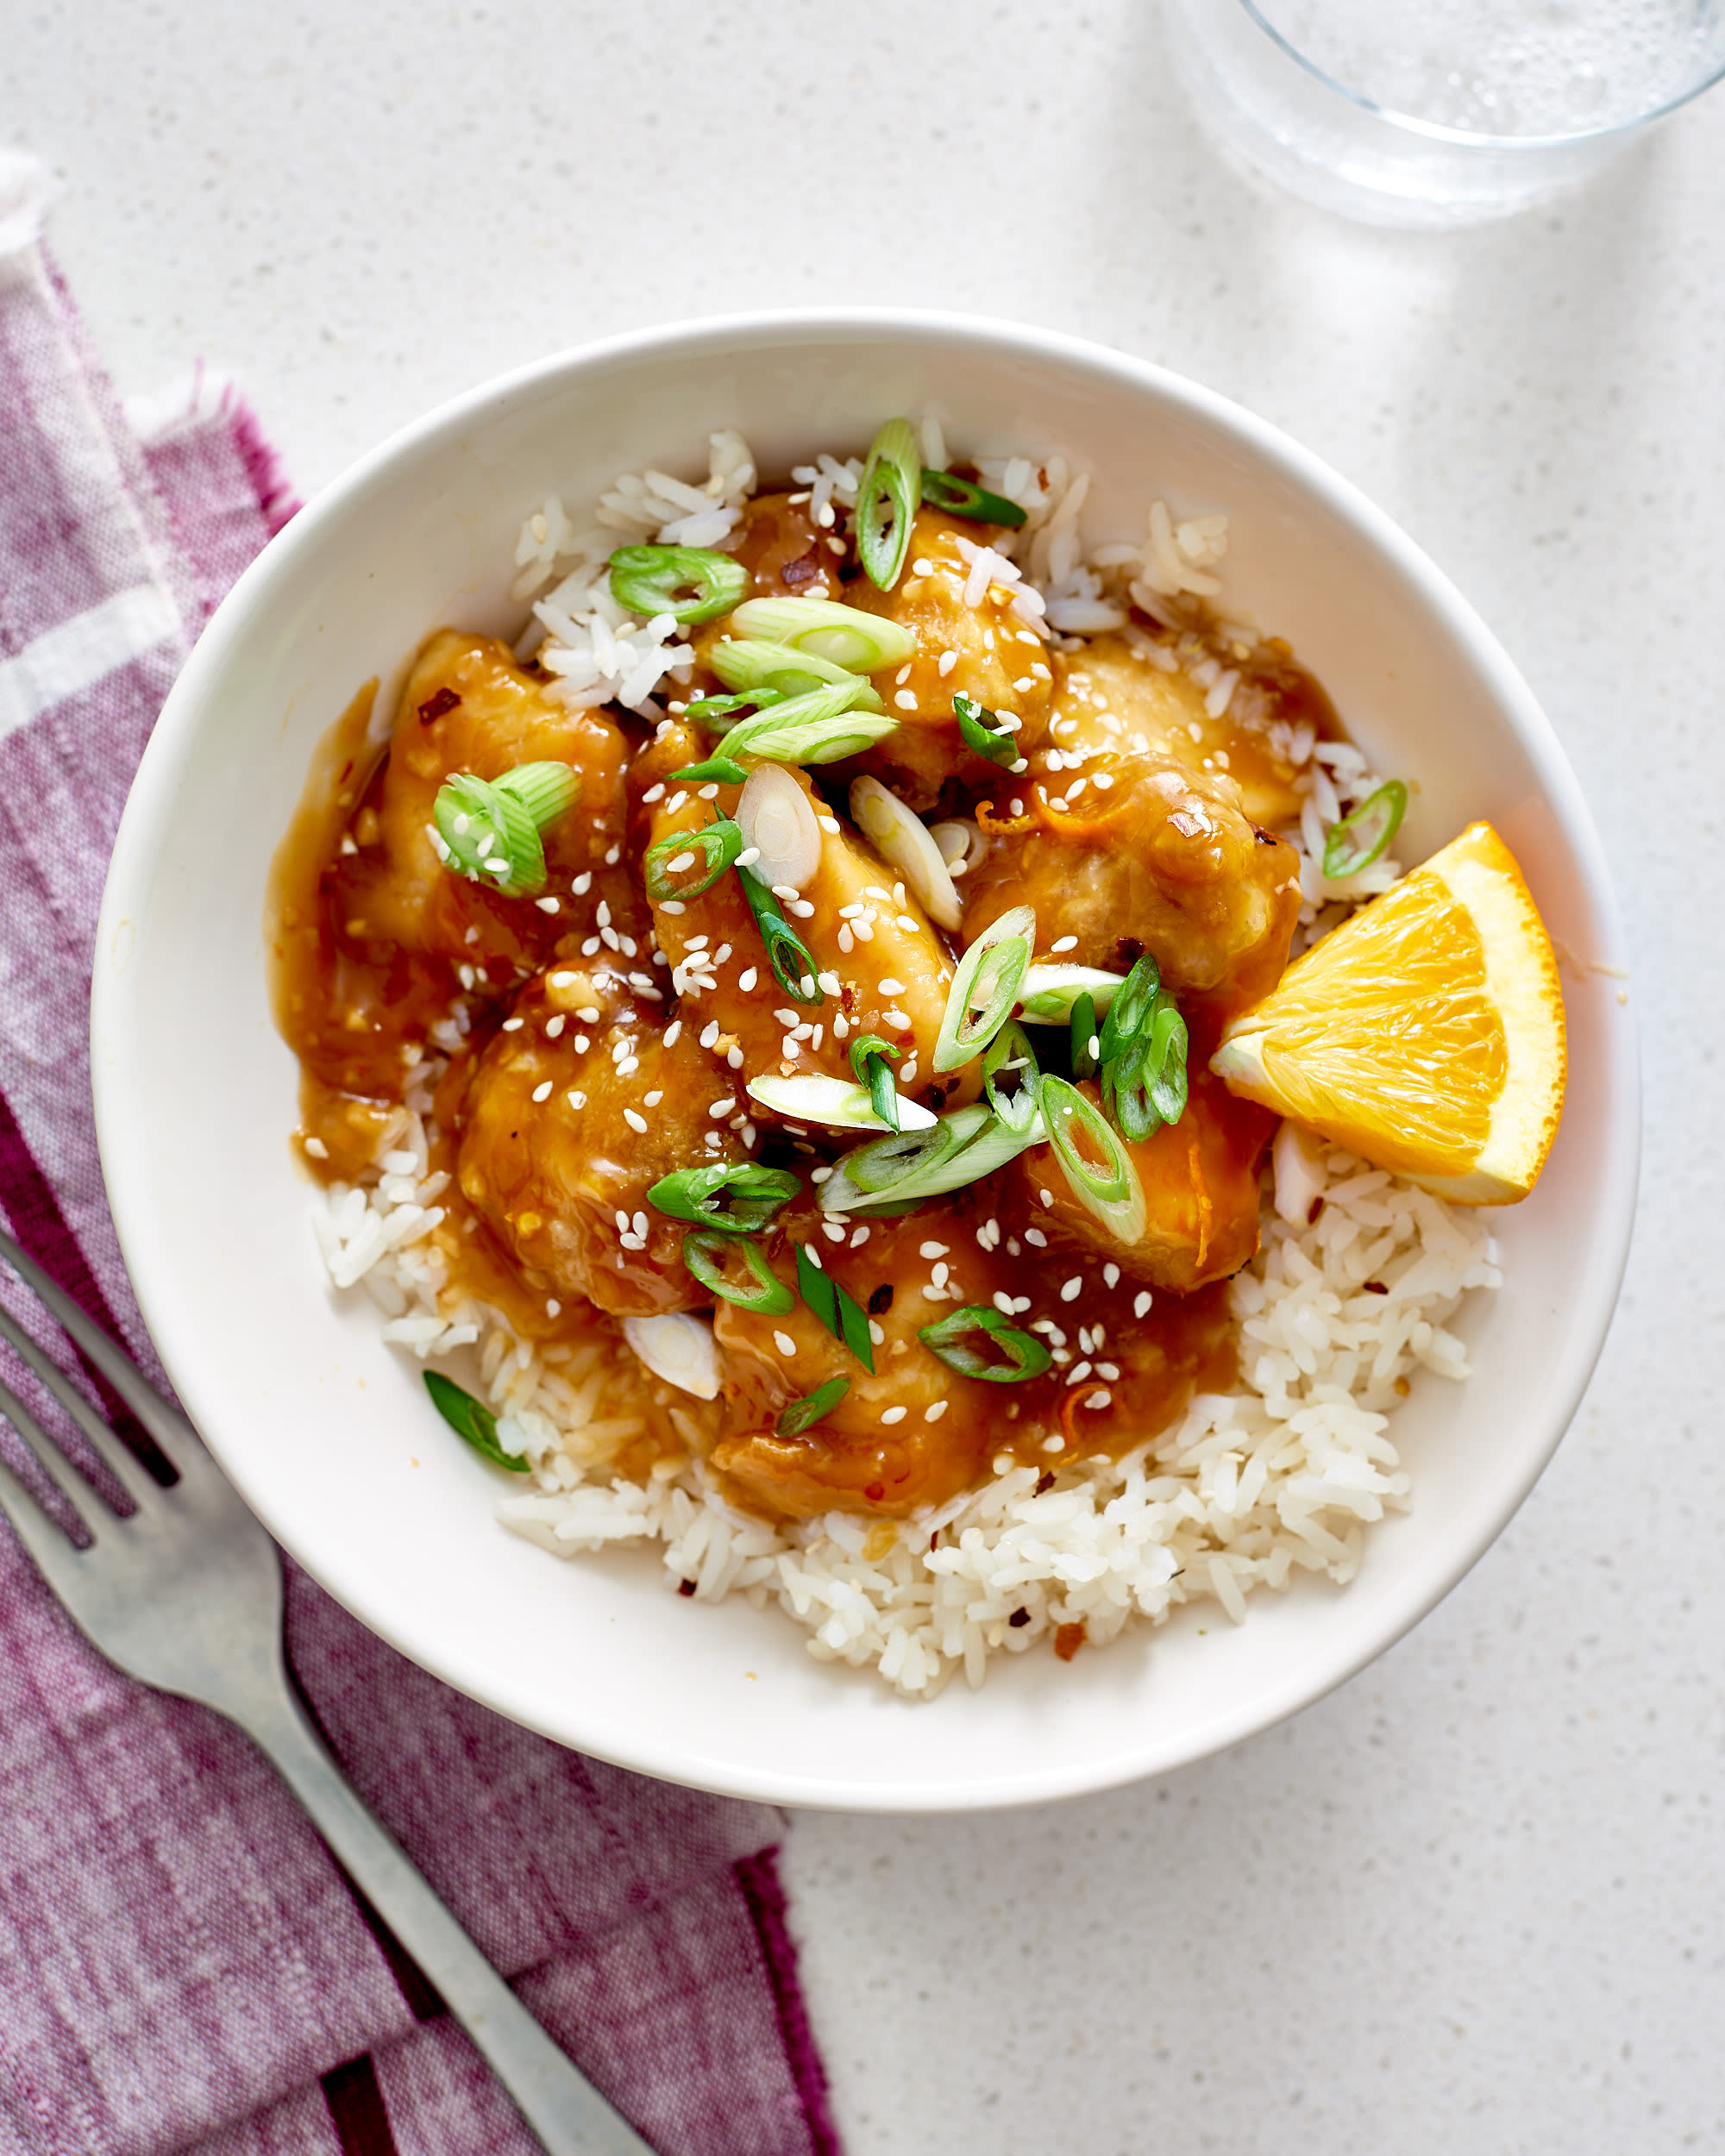 Recipe: Slow Cooker Orange Chicken